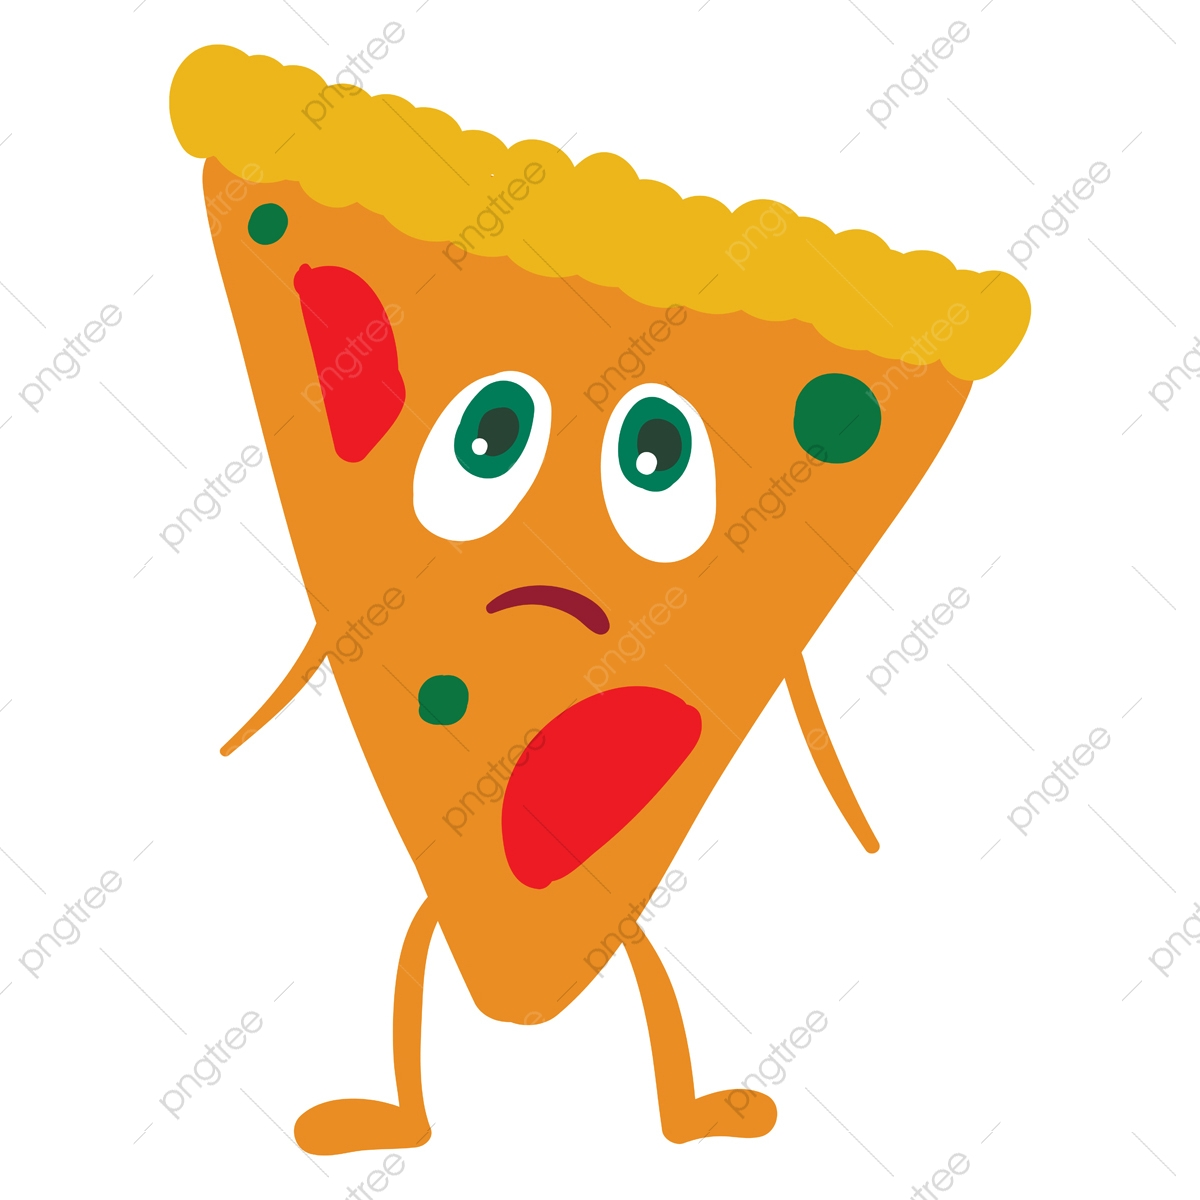 Emoji Of A Sad Pizza Vector Or Color Illustration, Emoji, Pizza, Cute PNG  and Vector with Transparent Background for Free Download